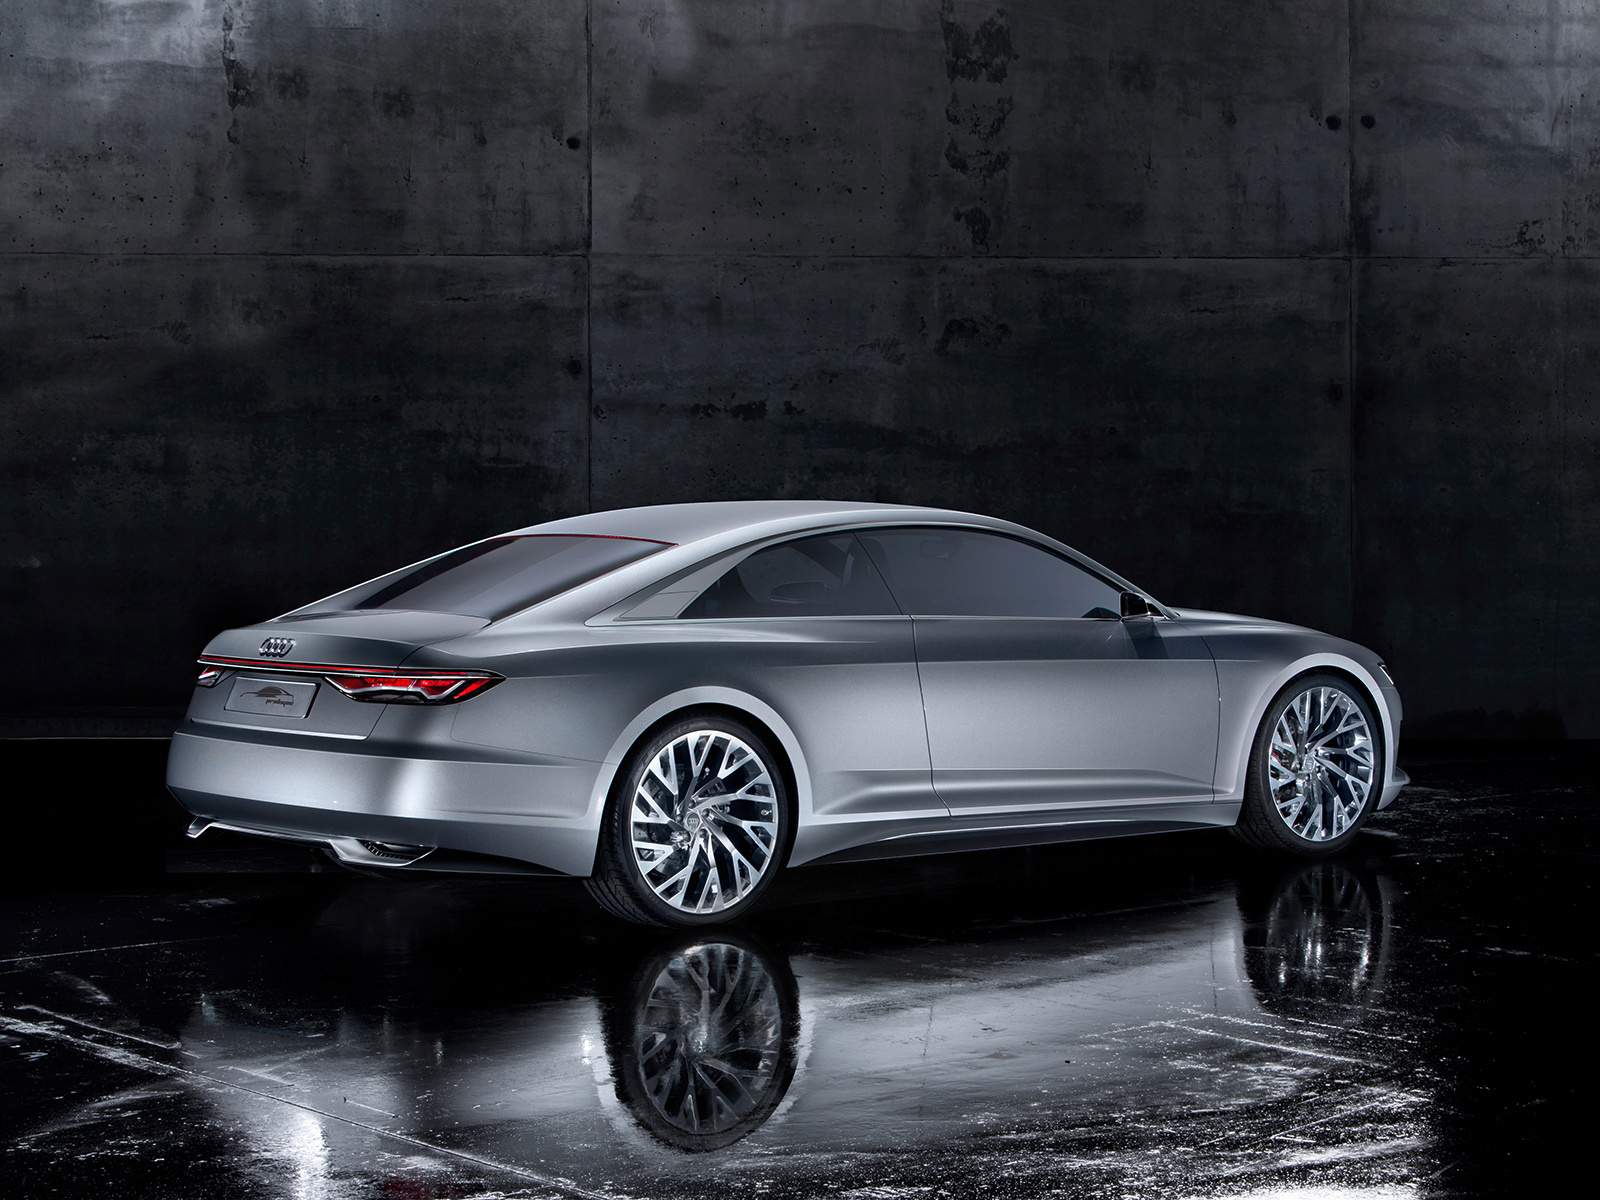 Audi A9 2016 Concept Wallpapers Images Photos Pictures Backgrounds